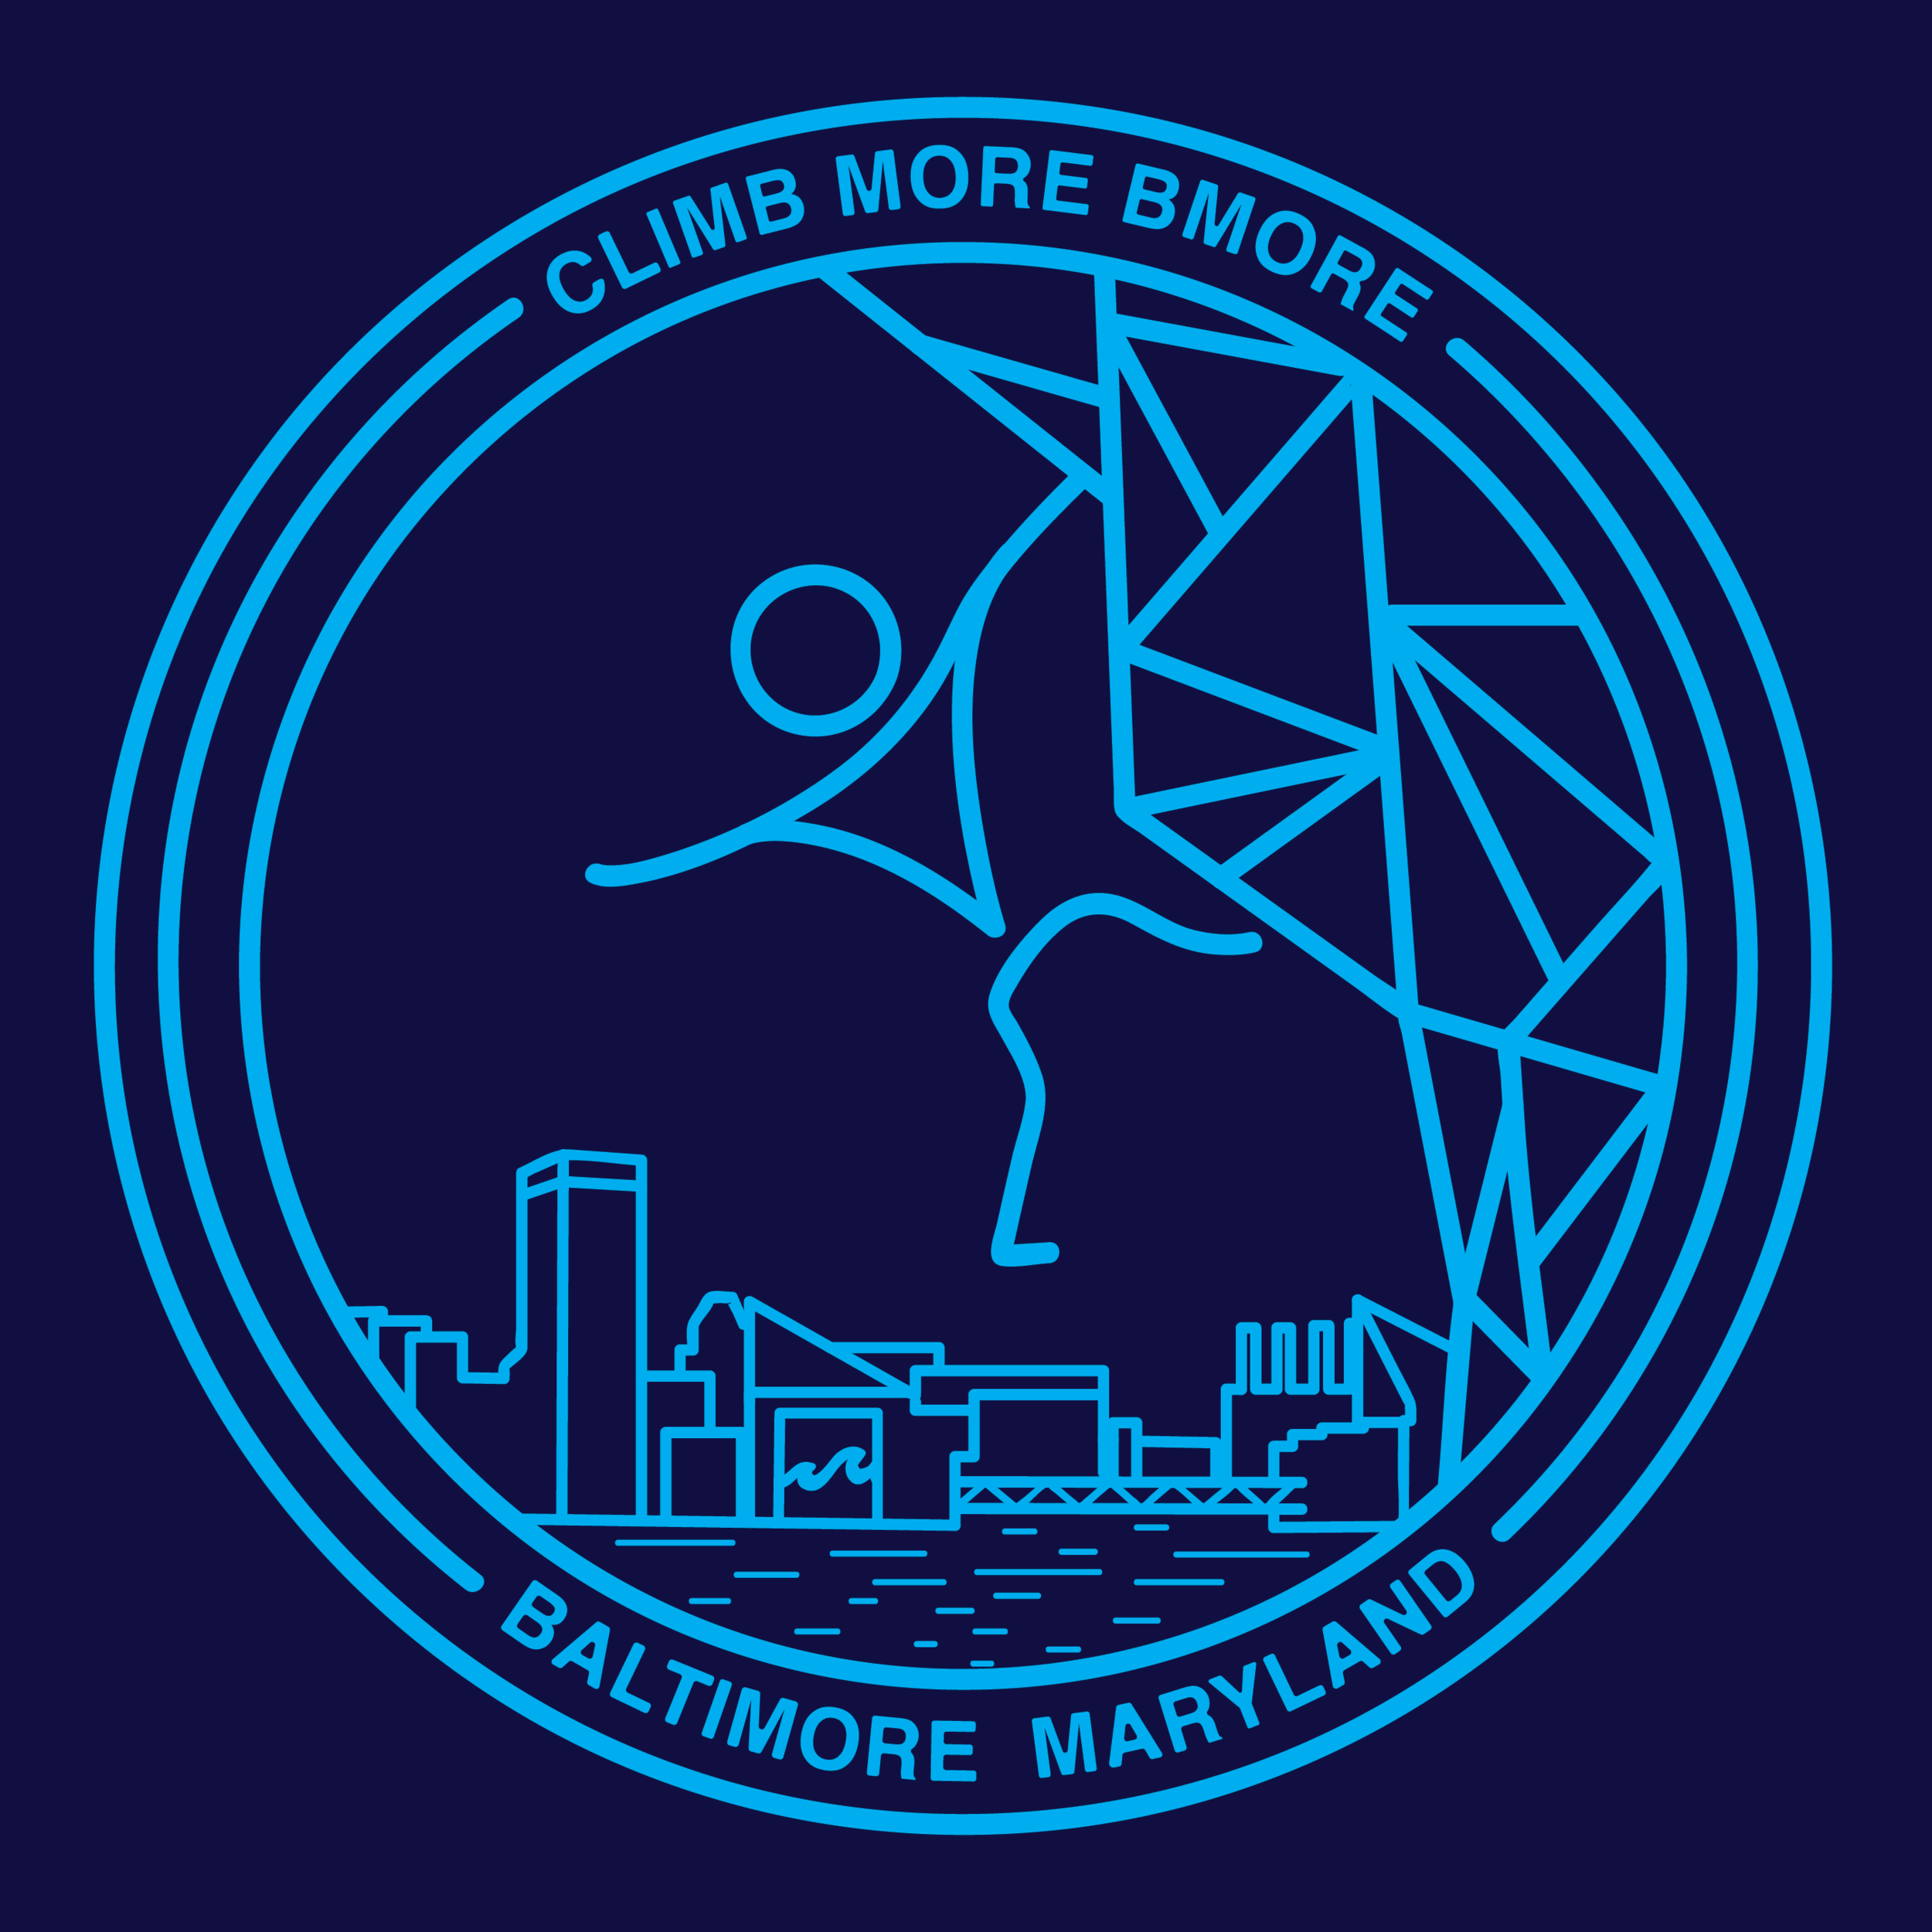 climb-more-bmore-navy-01.png